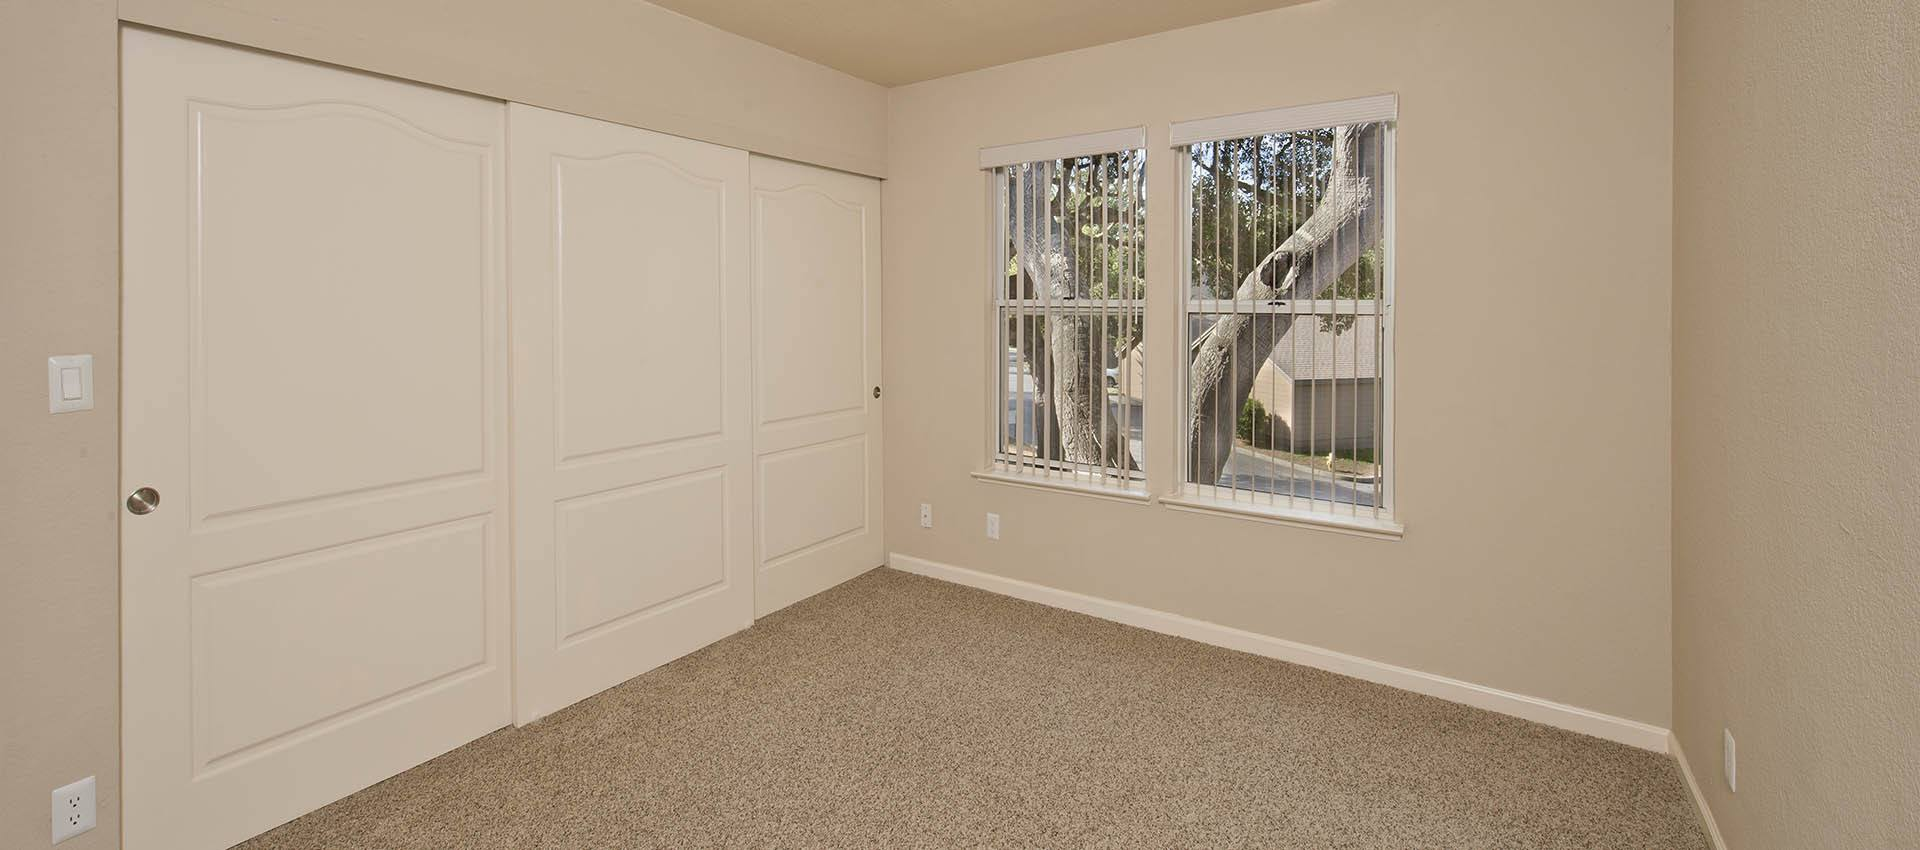 Bedroom With Large Closet at Seventeen Mile Drive Village Apartment Homes in Pacific Grove